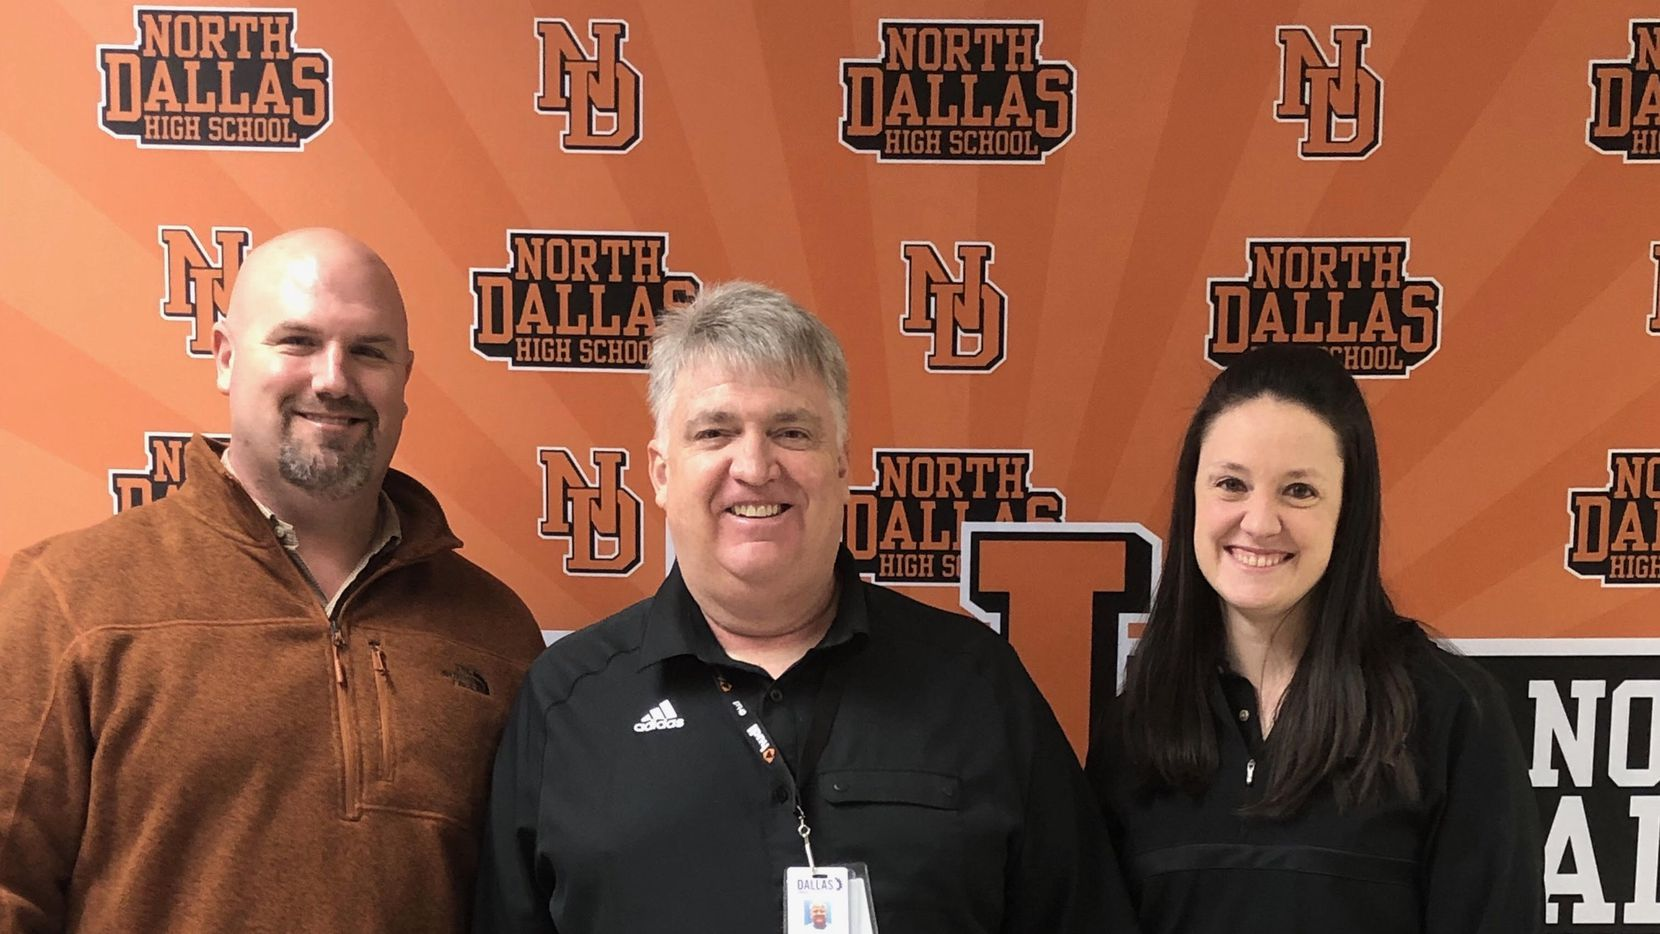 New North Dallas head coach Bobby Estes (middle), who coached the previous 21 years at Woodrow Wilson, stands with North Dallas athletic director Brian Barnett (left) and North Dallas school principal Katherine Eska on Feb. 8, 2019.